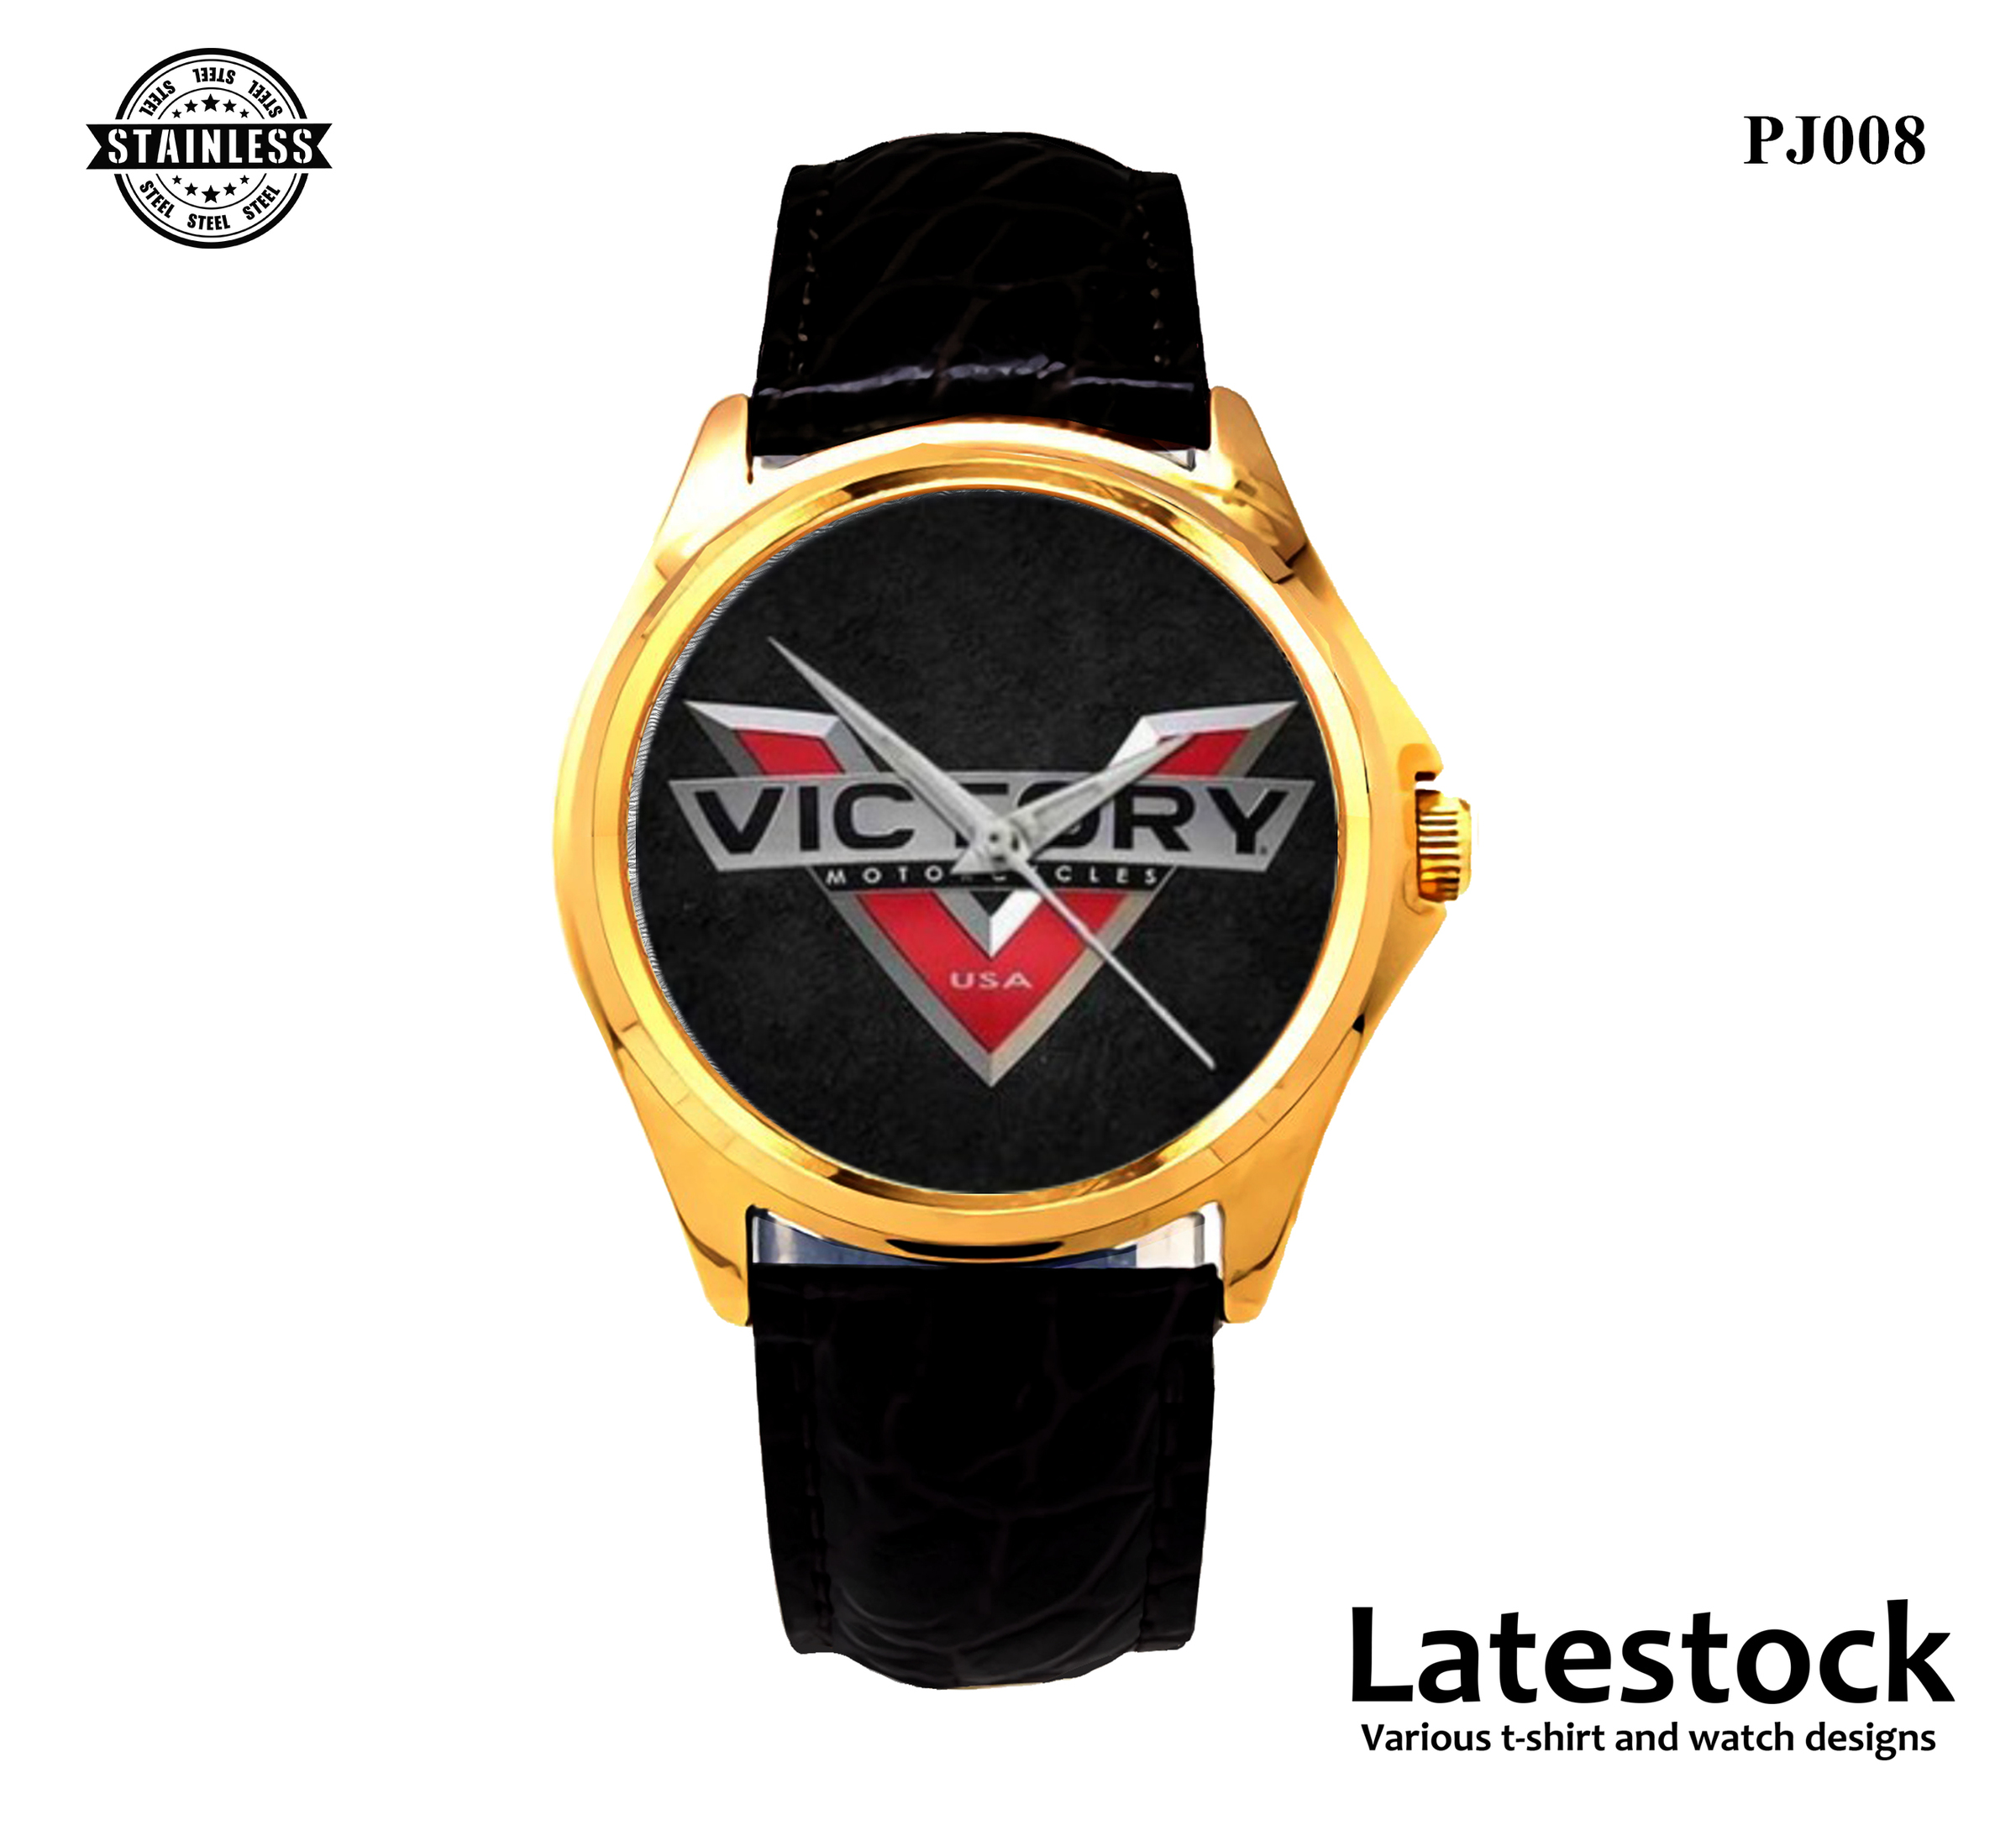 PJ008 Victory steel Sport Metal Watch Gold.jpg